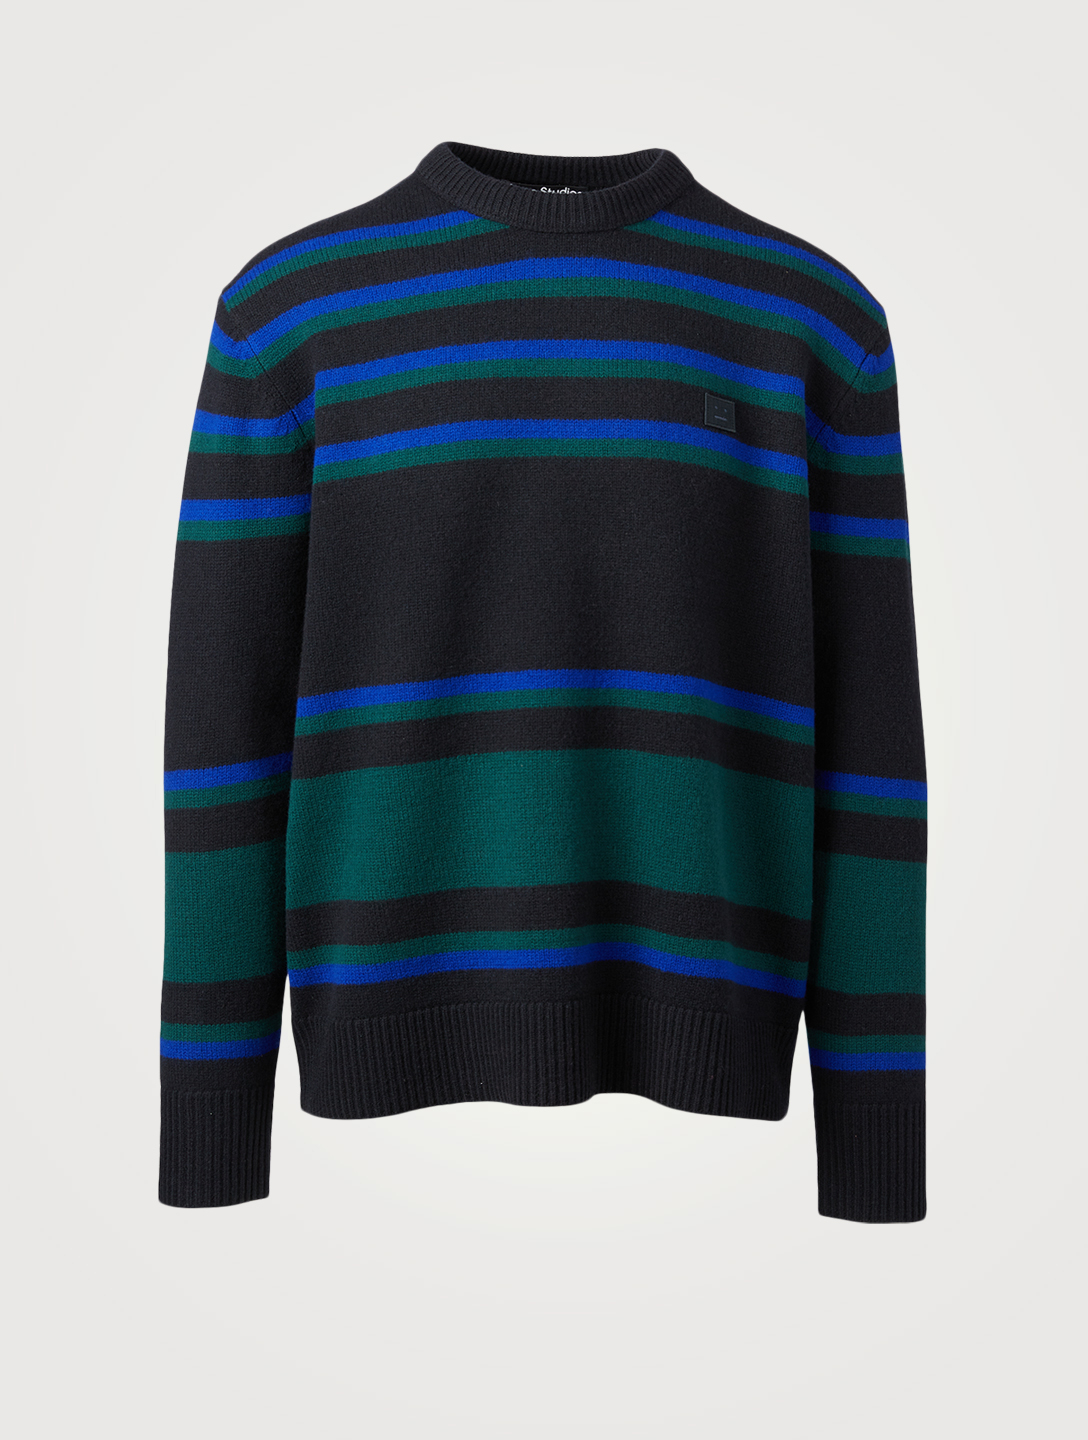 ACNE STUDIOS Wool Crewneck Sweater In Striped Print Men's Blue